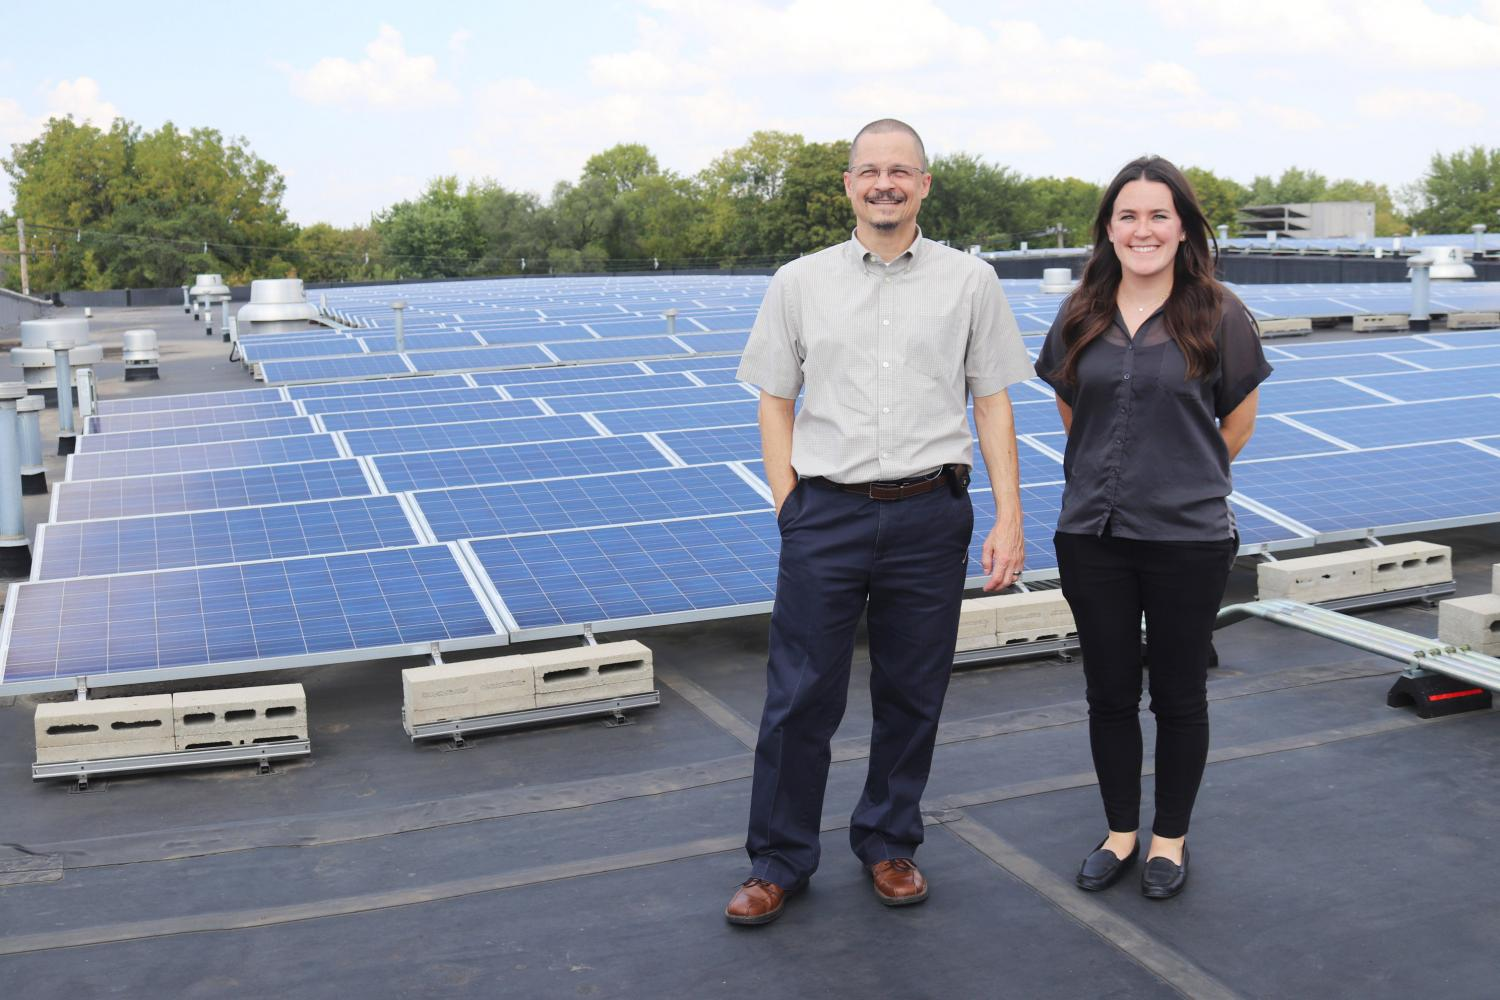 Managing Director, Karl Gnadt, and Grants Manager, Jane Sullivan, stand in front of their new solar panels that will help run the new CUMTD Hydrogen Fuel Cell Buses. The buses are set to be replaced some time in 2019.